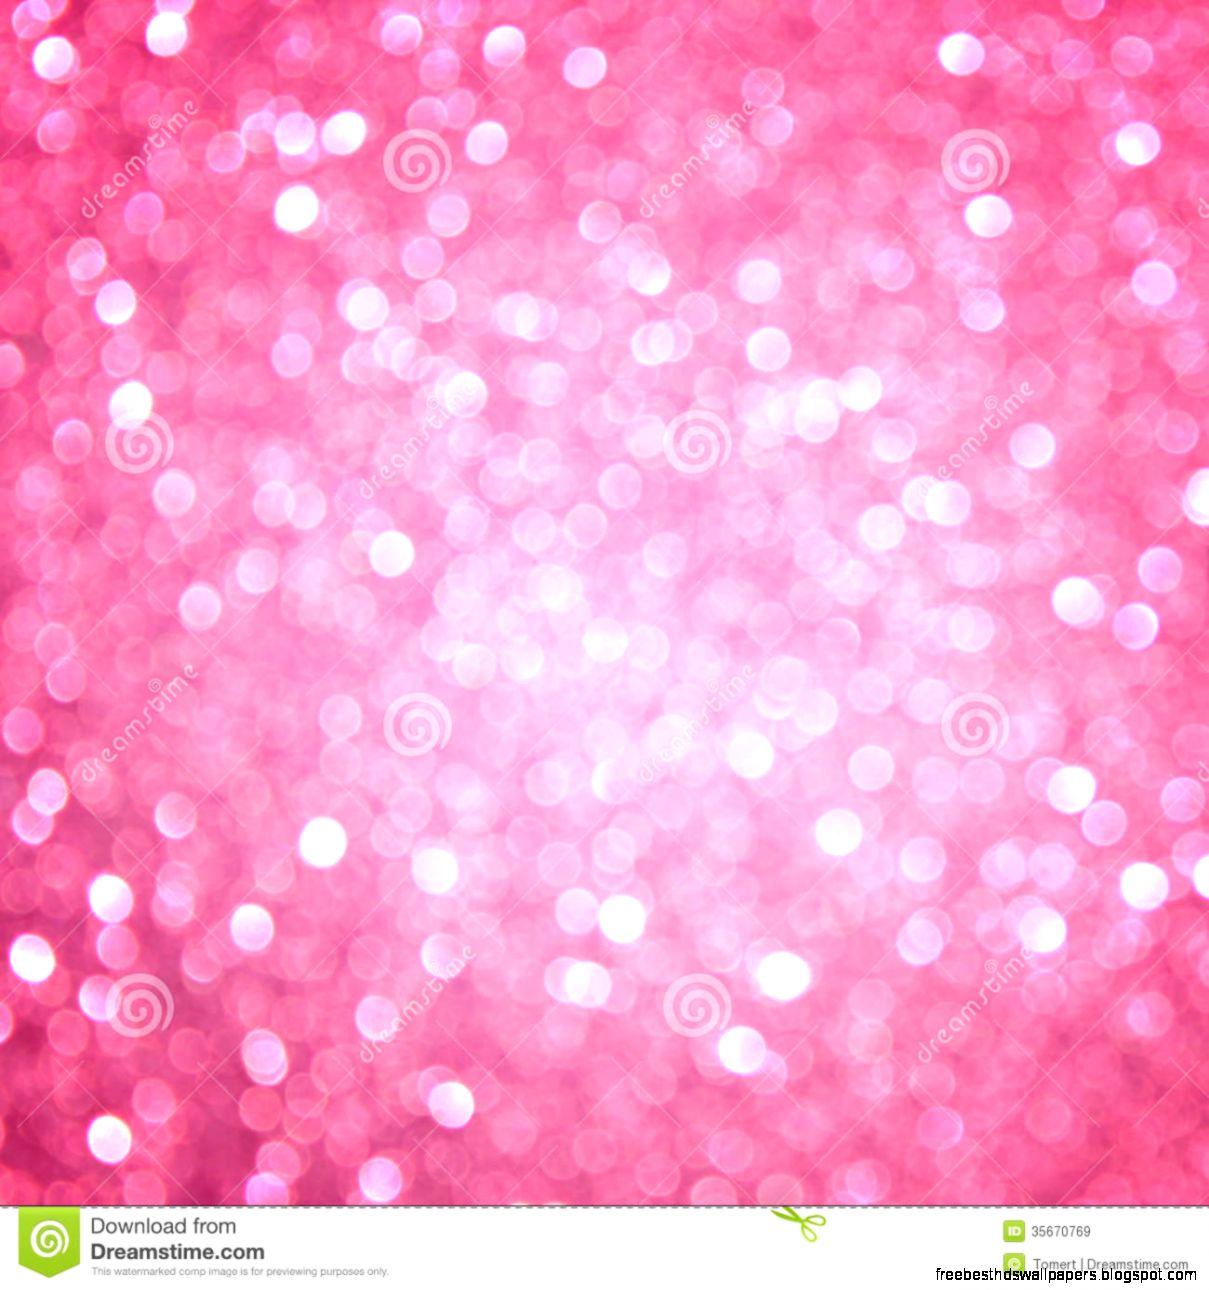 Light Pink Glitter Background Wallpaper